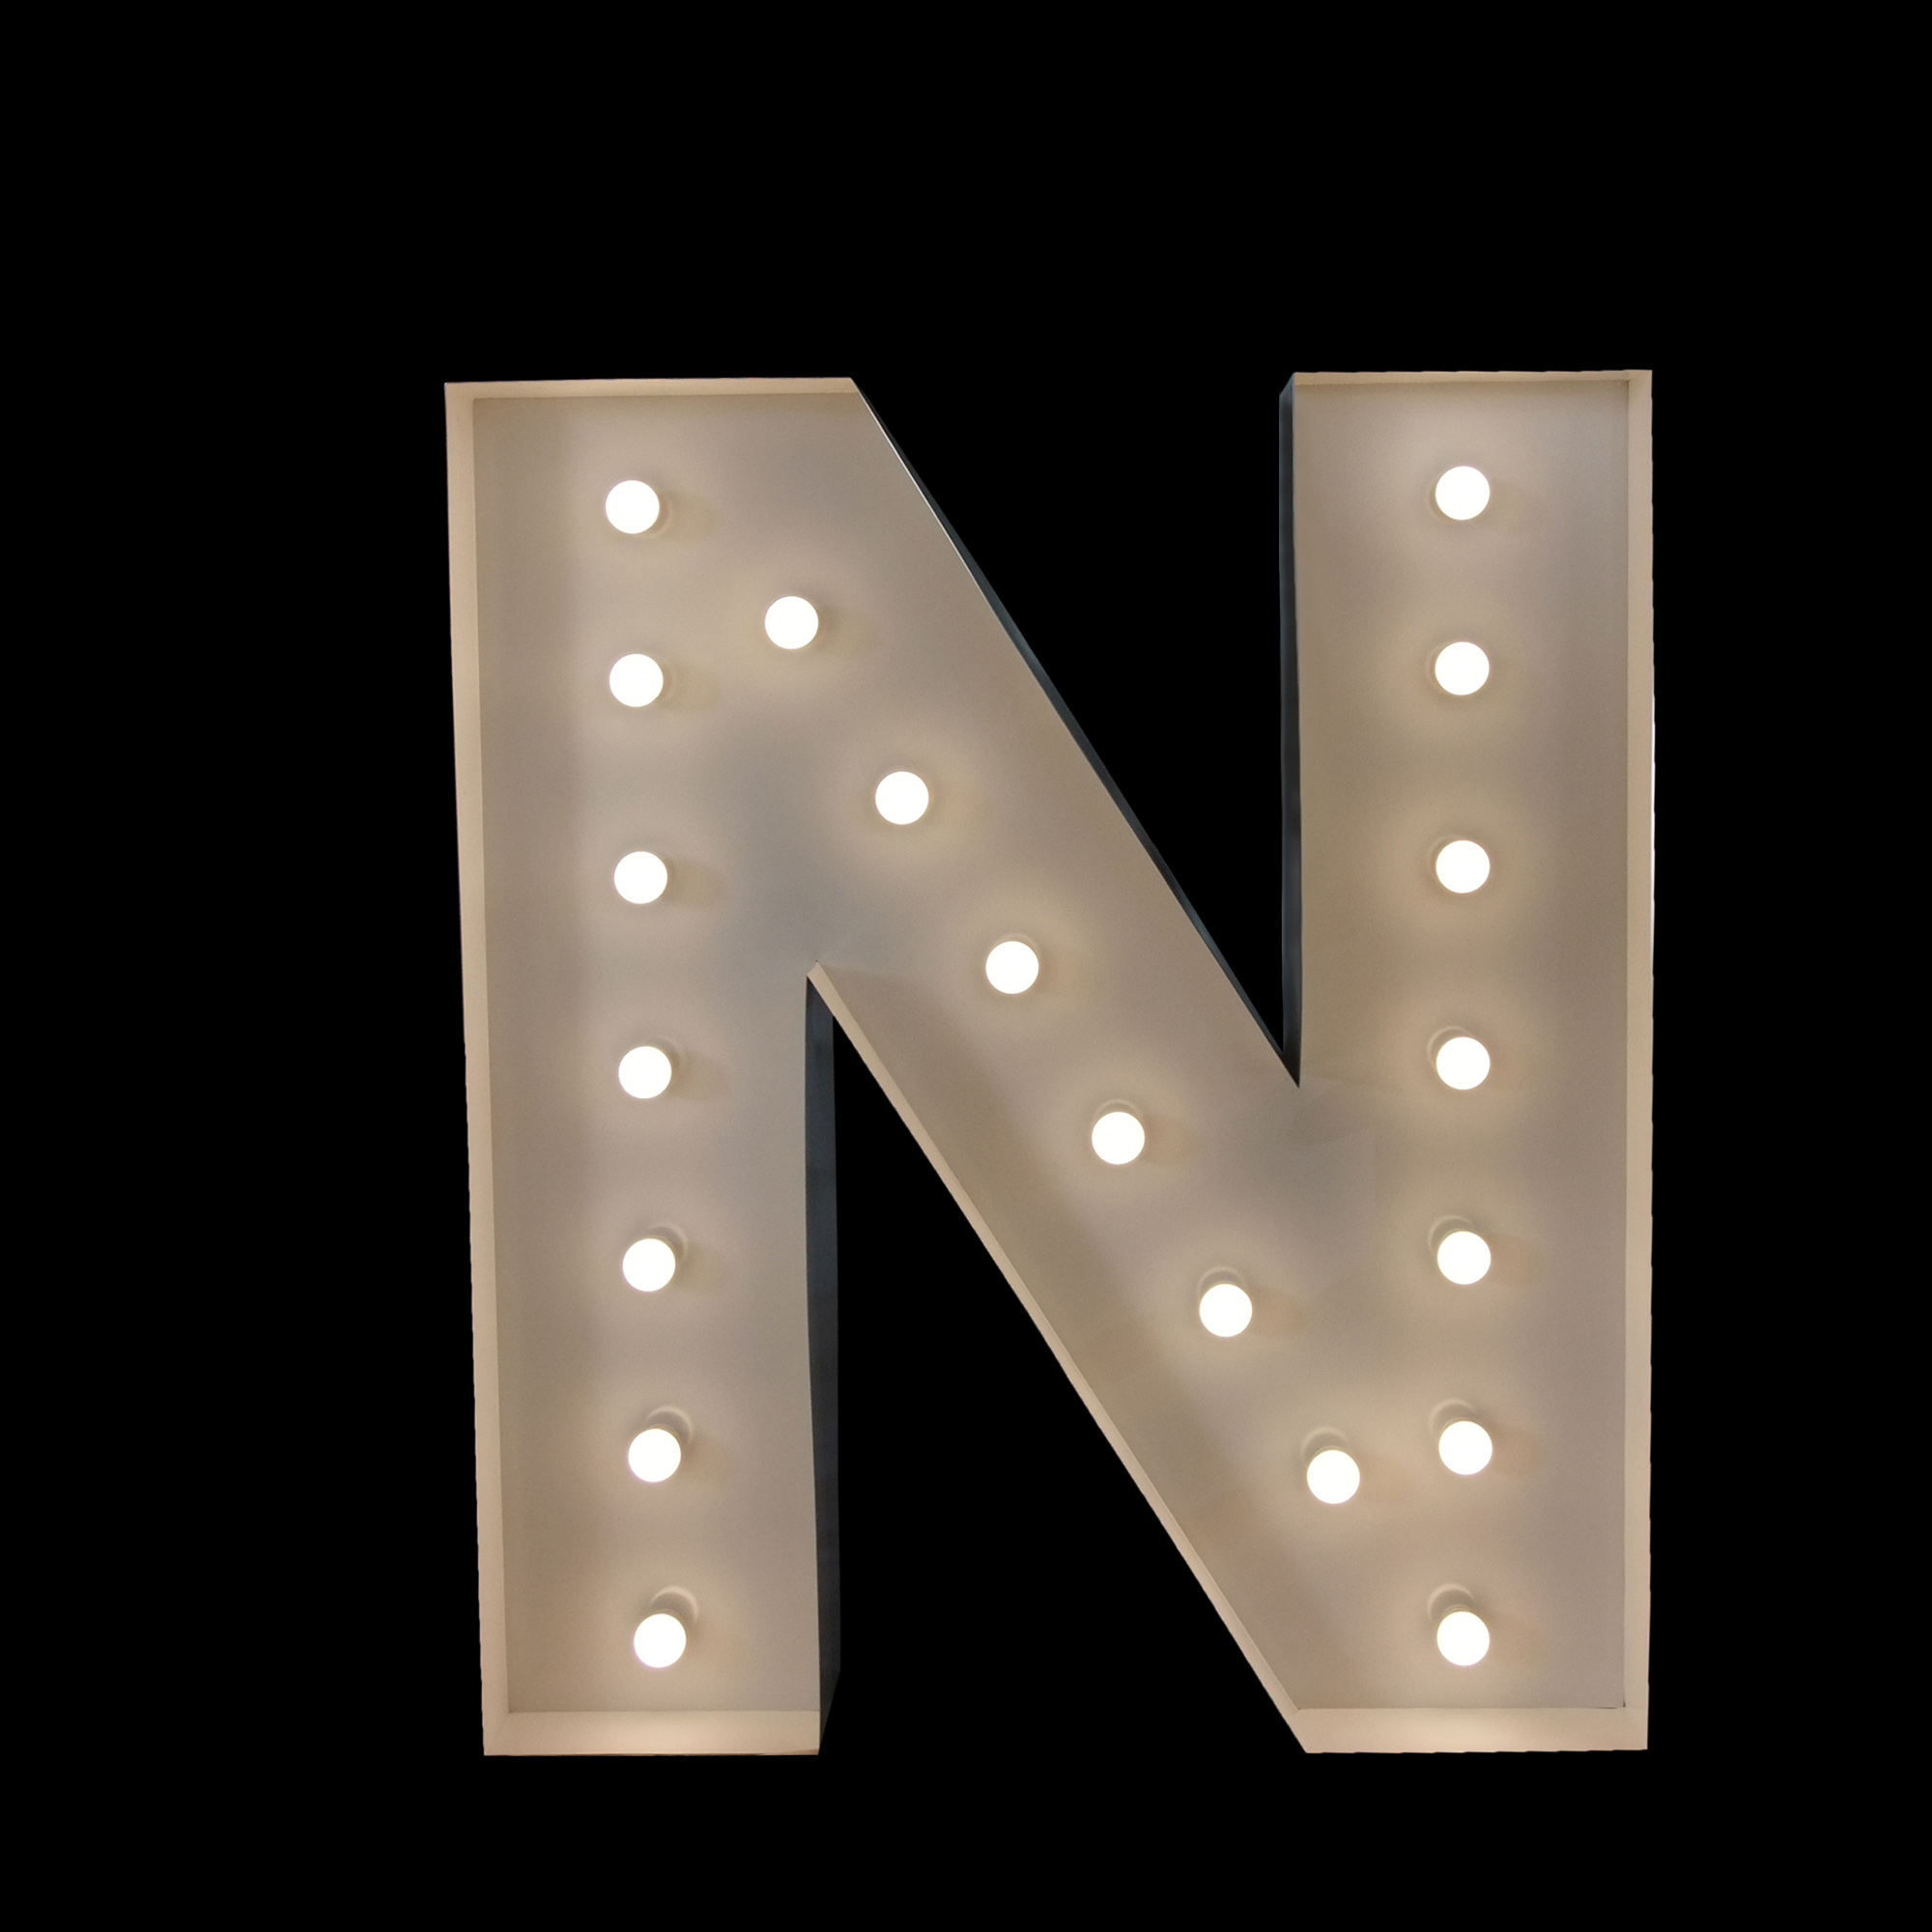 giant letter N - light up letters for events